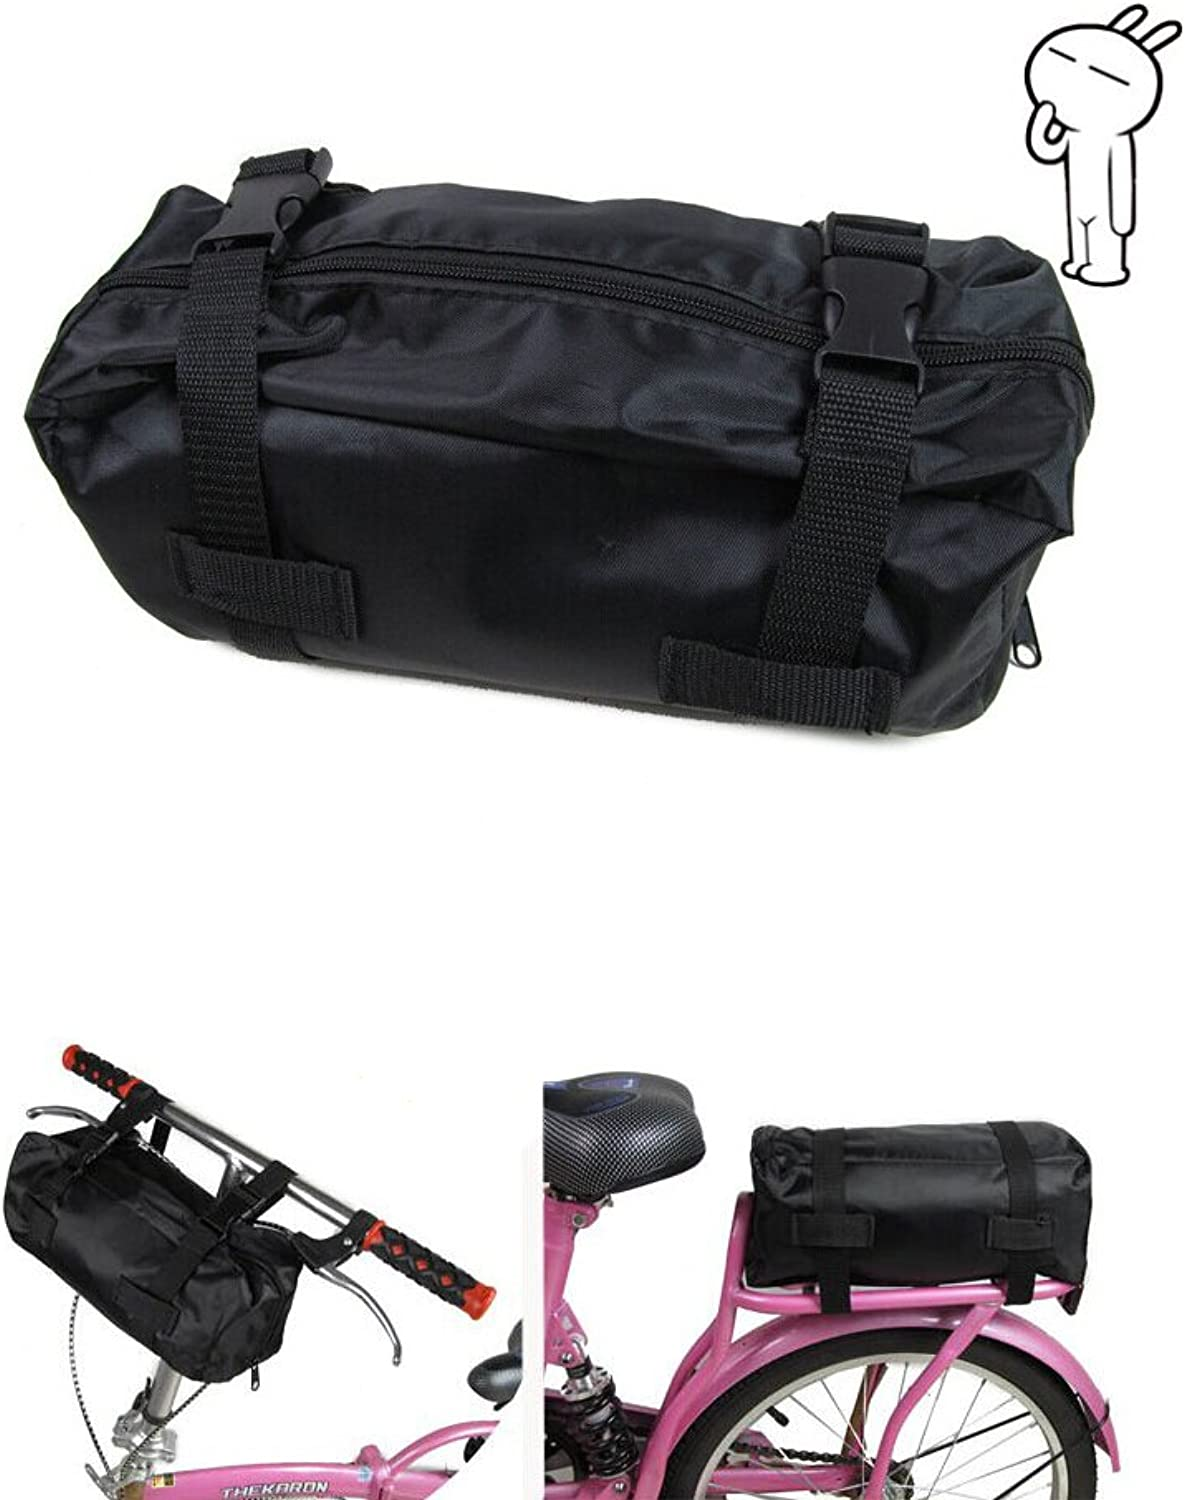 EverTrust(TM)New MTB Cycling Bicycle Bike Foldable Carrier Bag Carry Pack Storage Loading Package Loading Bag for 14   20  Folding Bike